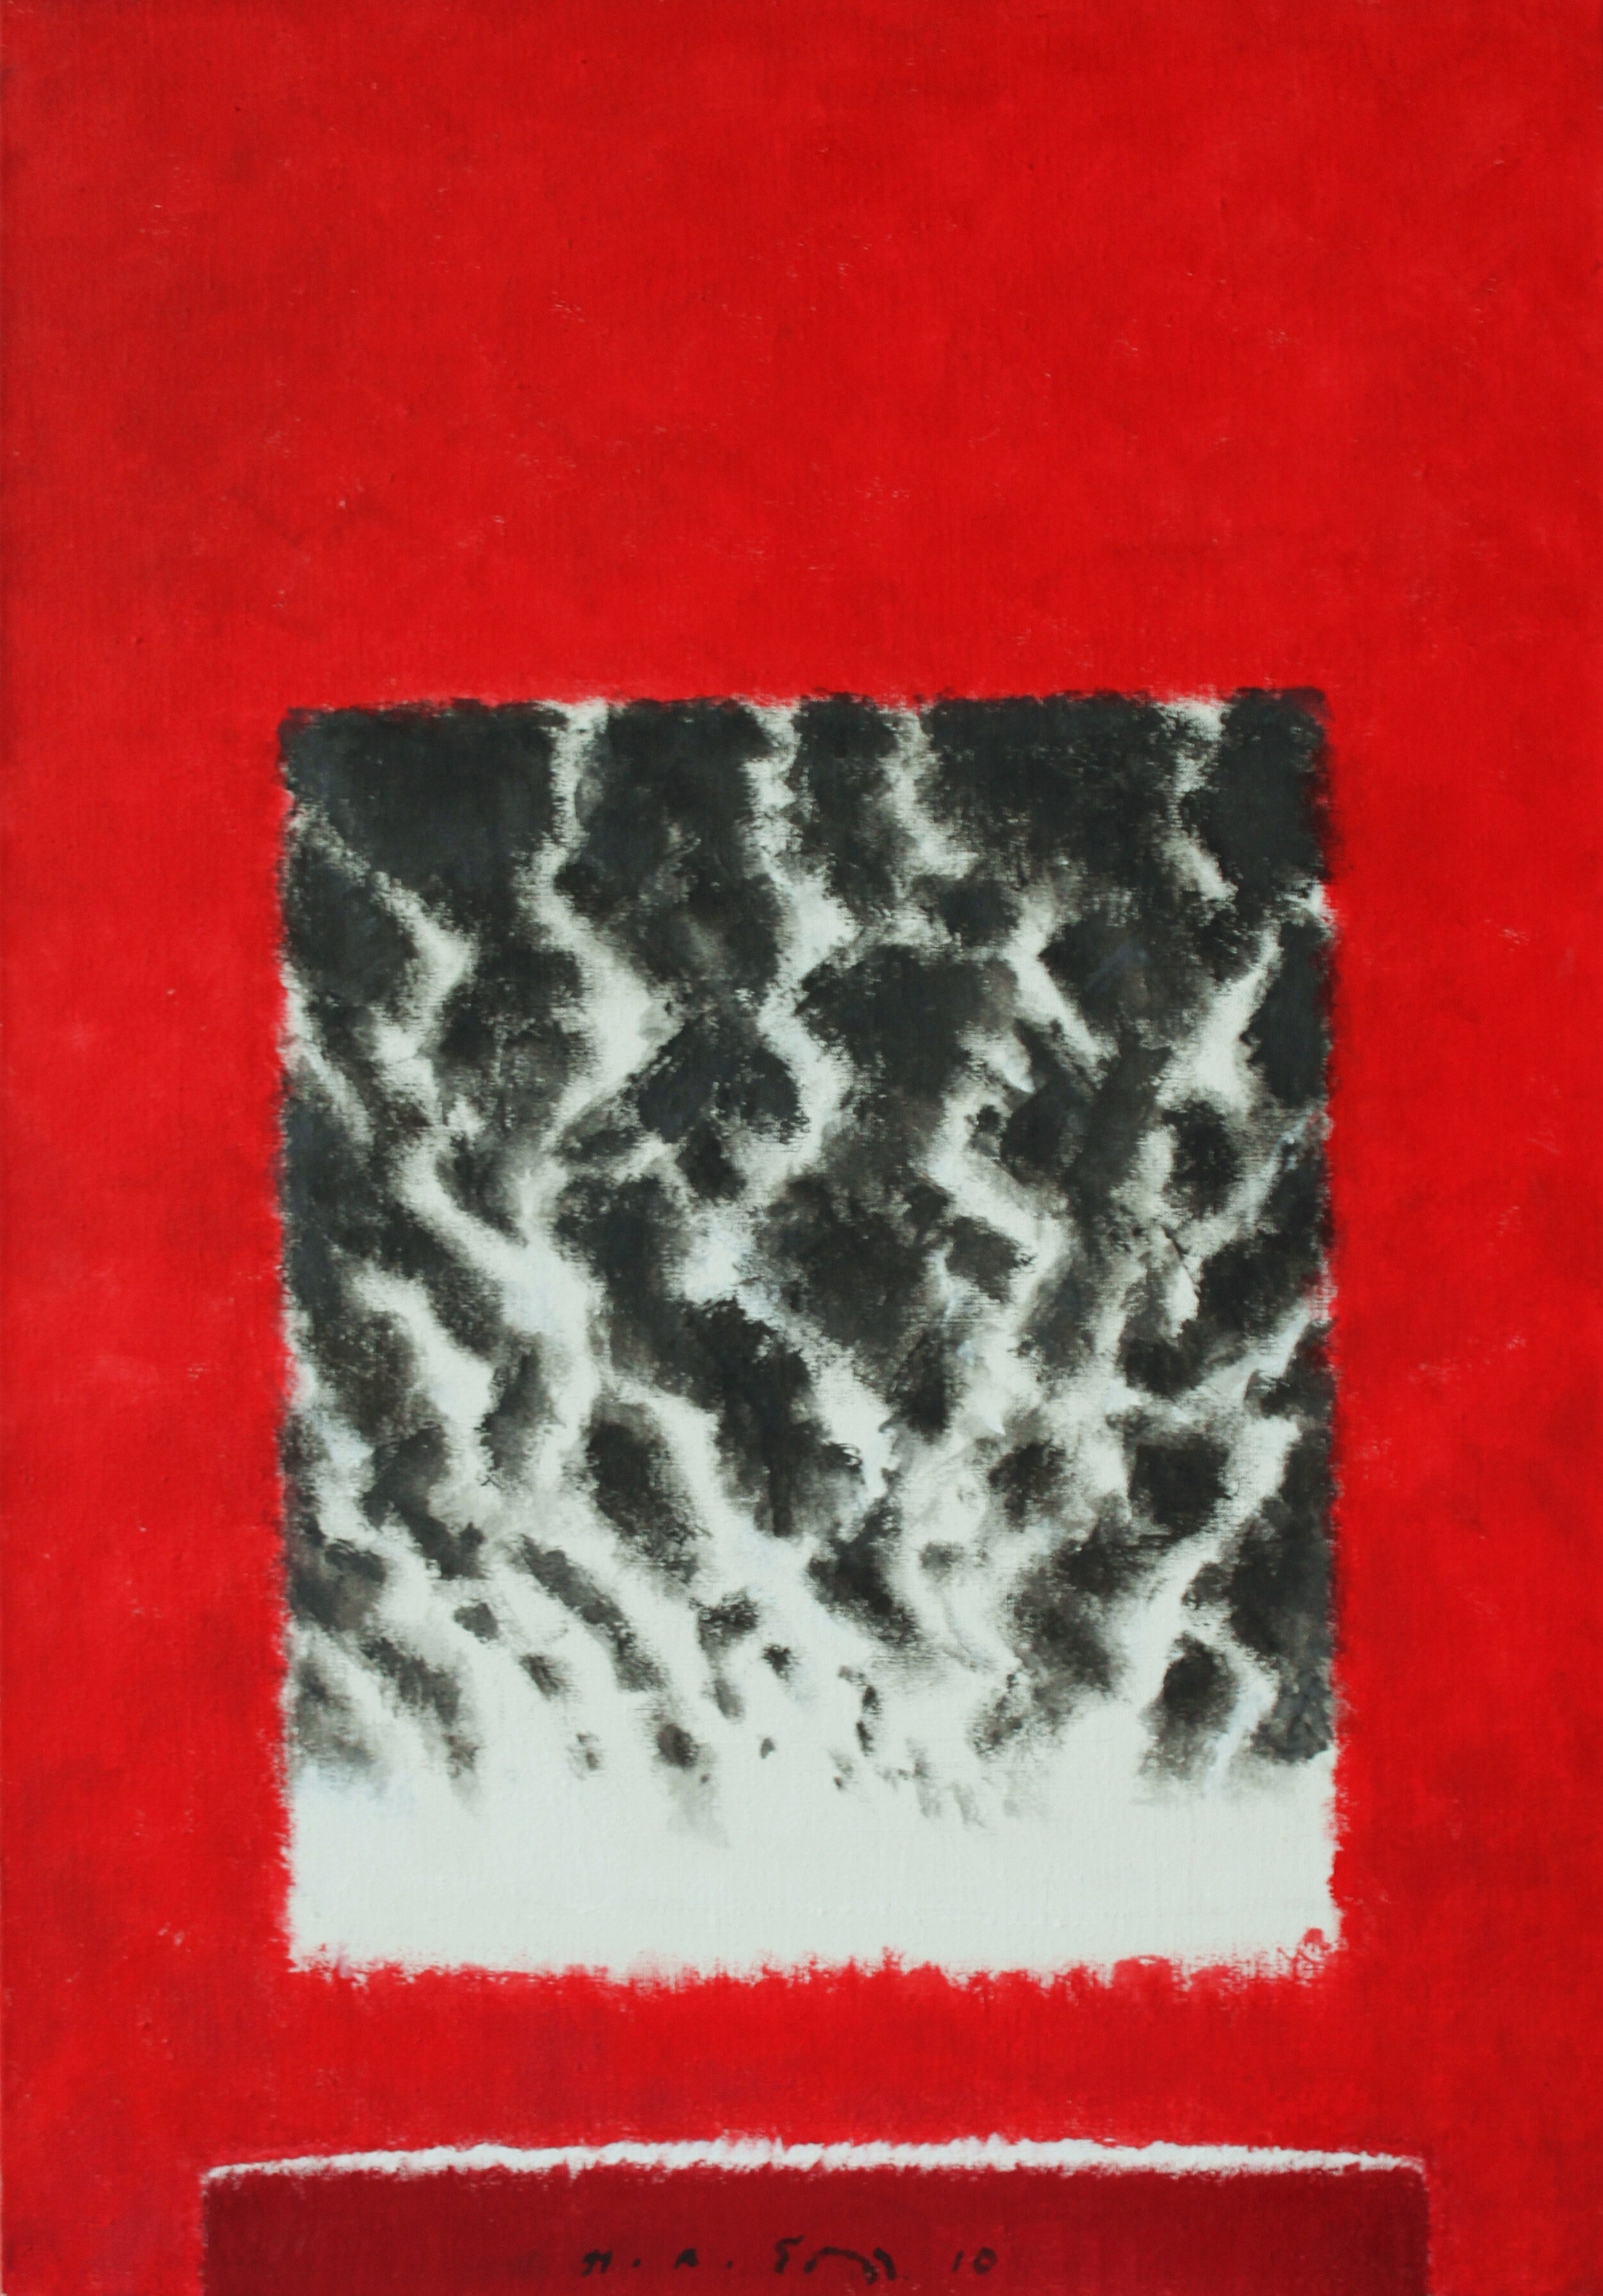 """The Course of the Rivers II, 2010, Acrylic on Canvas, 46"""" x 32""""  Vertical colorfield abstraction with red dominating, black and white river running through middle"""